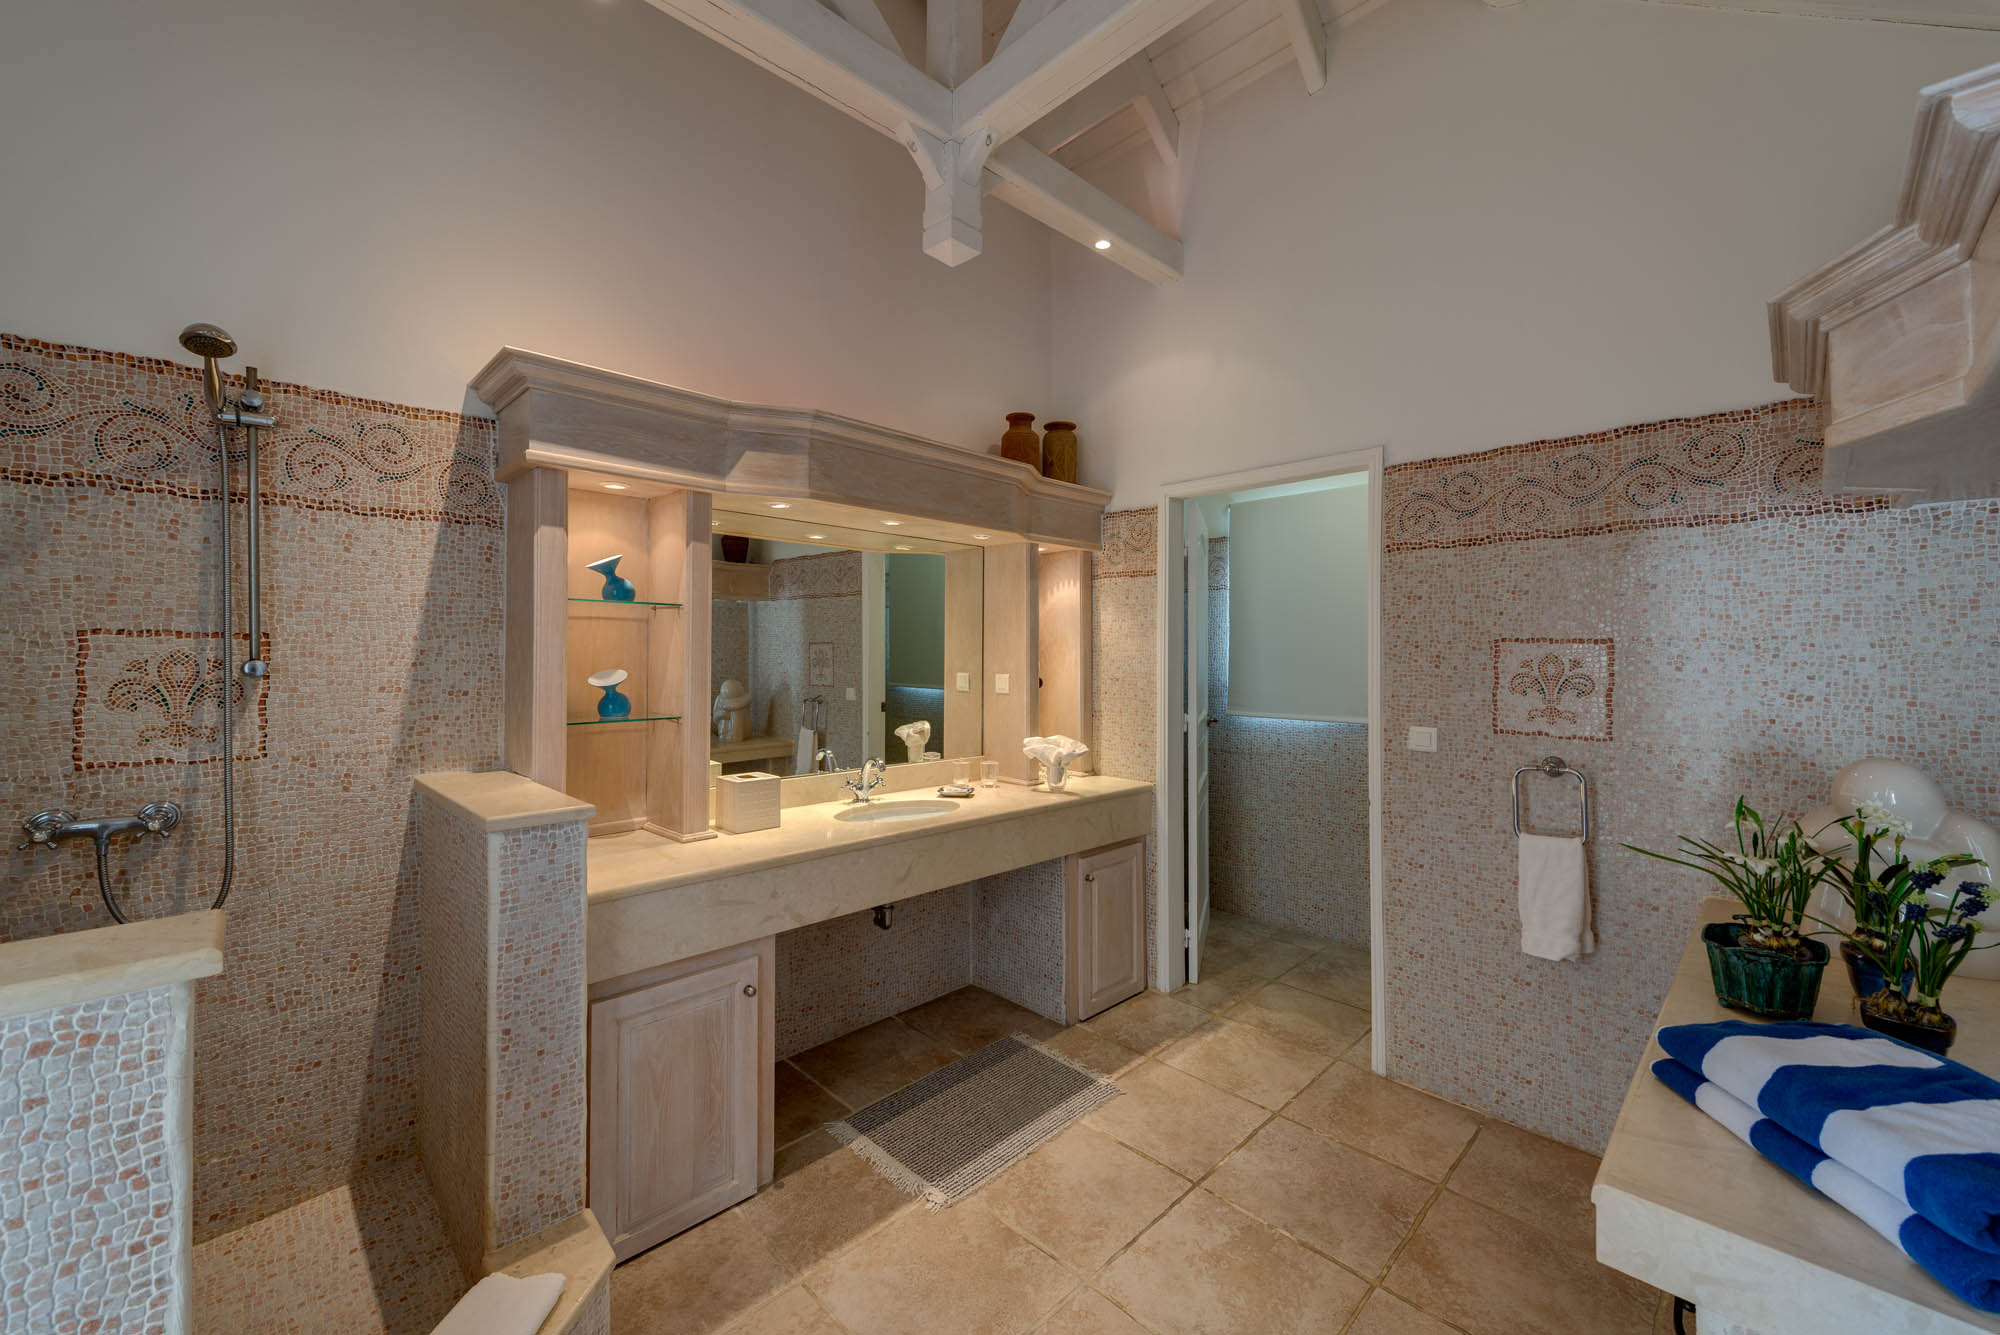 The ensuite bathrooms of the master bedrooms have an elegant mosaic tiled design.